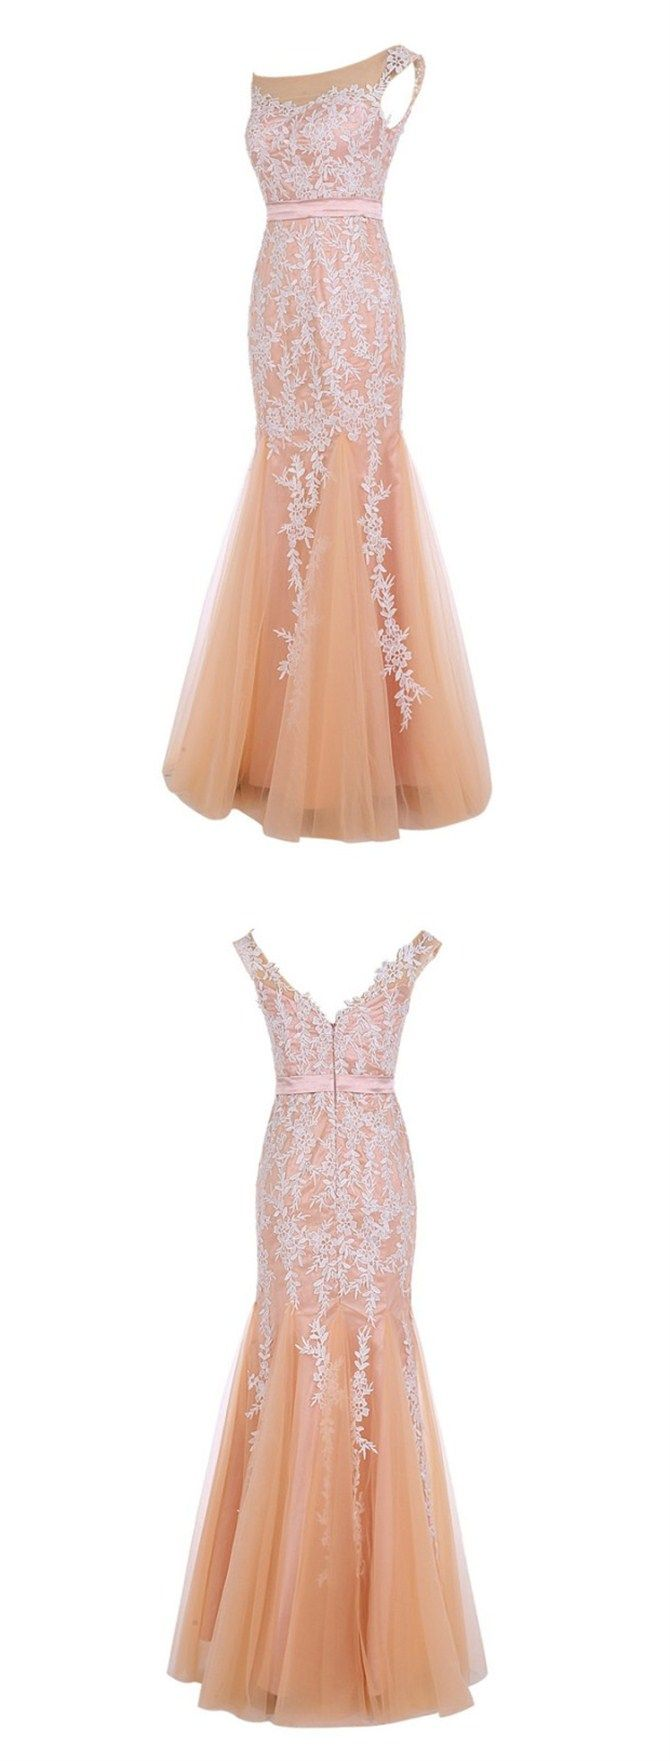 Charming Prom Dress, Scoop Cap Prom Dress, Sleeveless Floor-Length Prom Dress, Champagne Prom Evening Dress with Lace